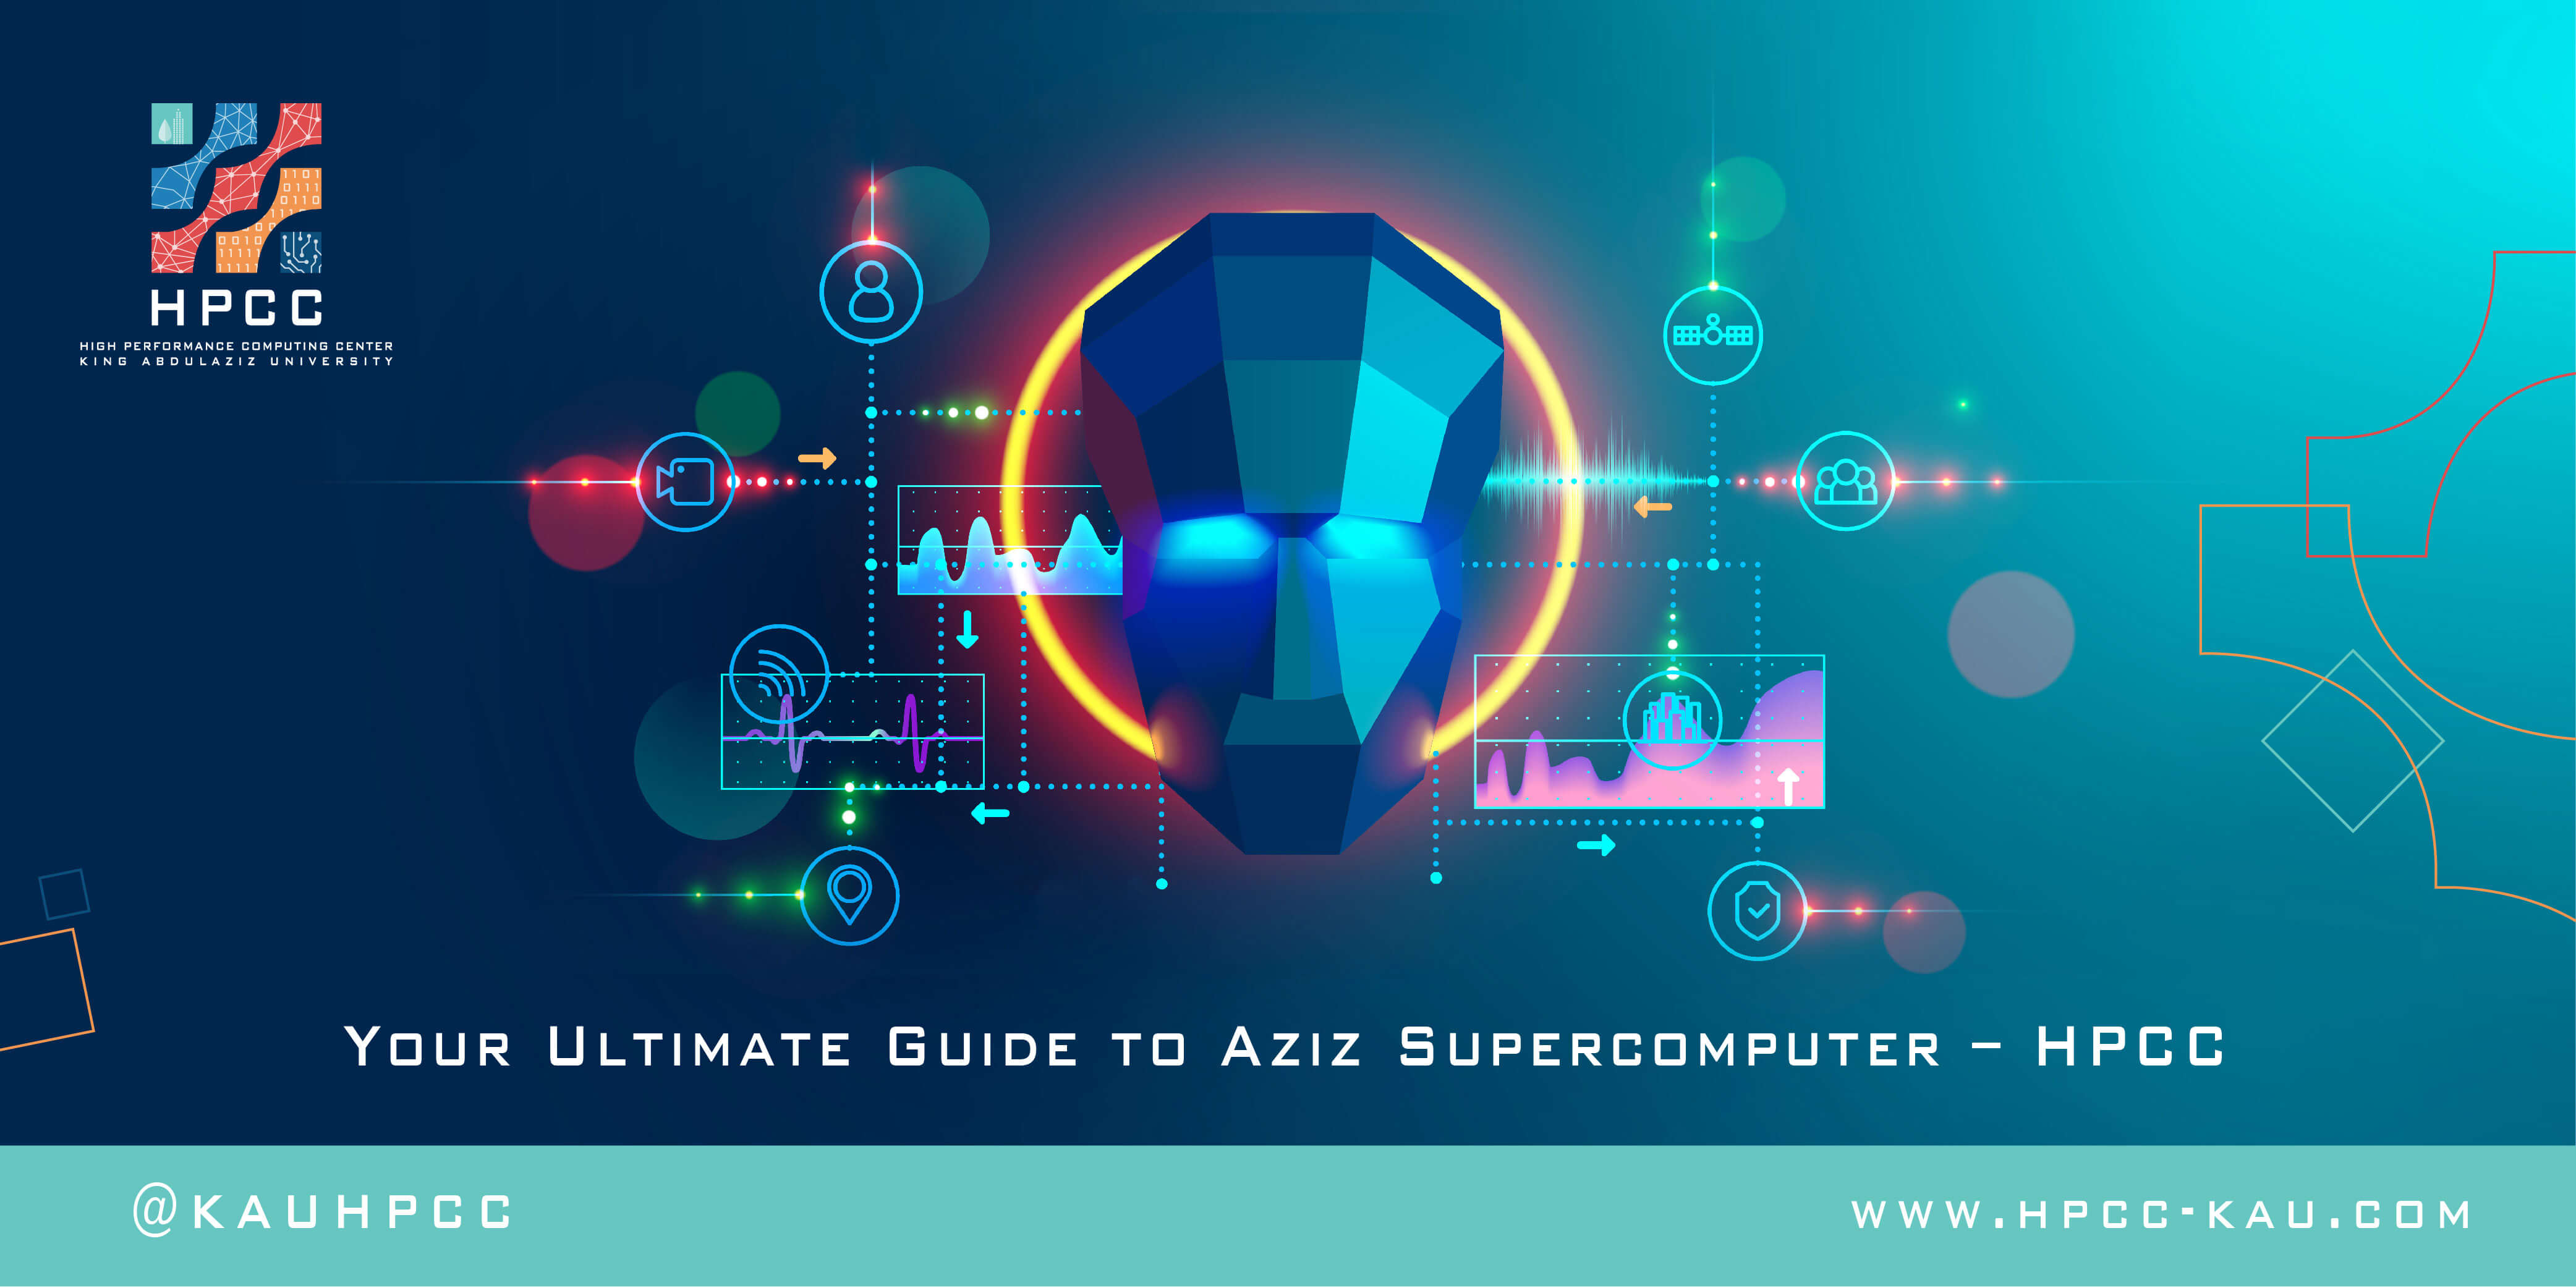 Your Ultimate Guide to Aziz Supercomputer – HPCC